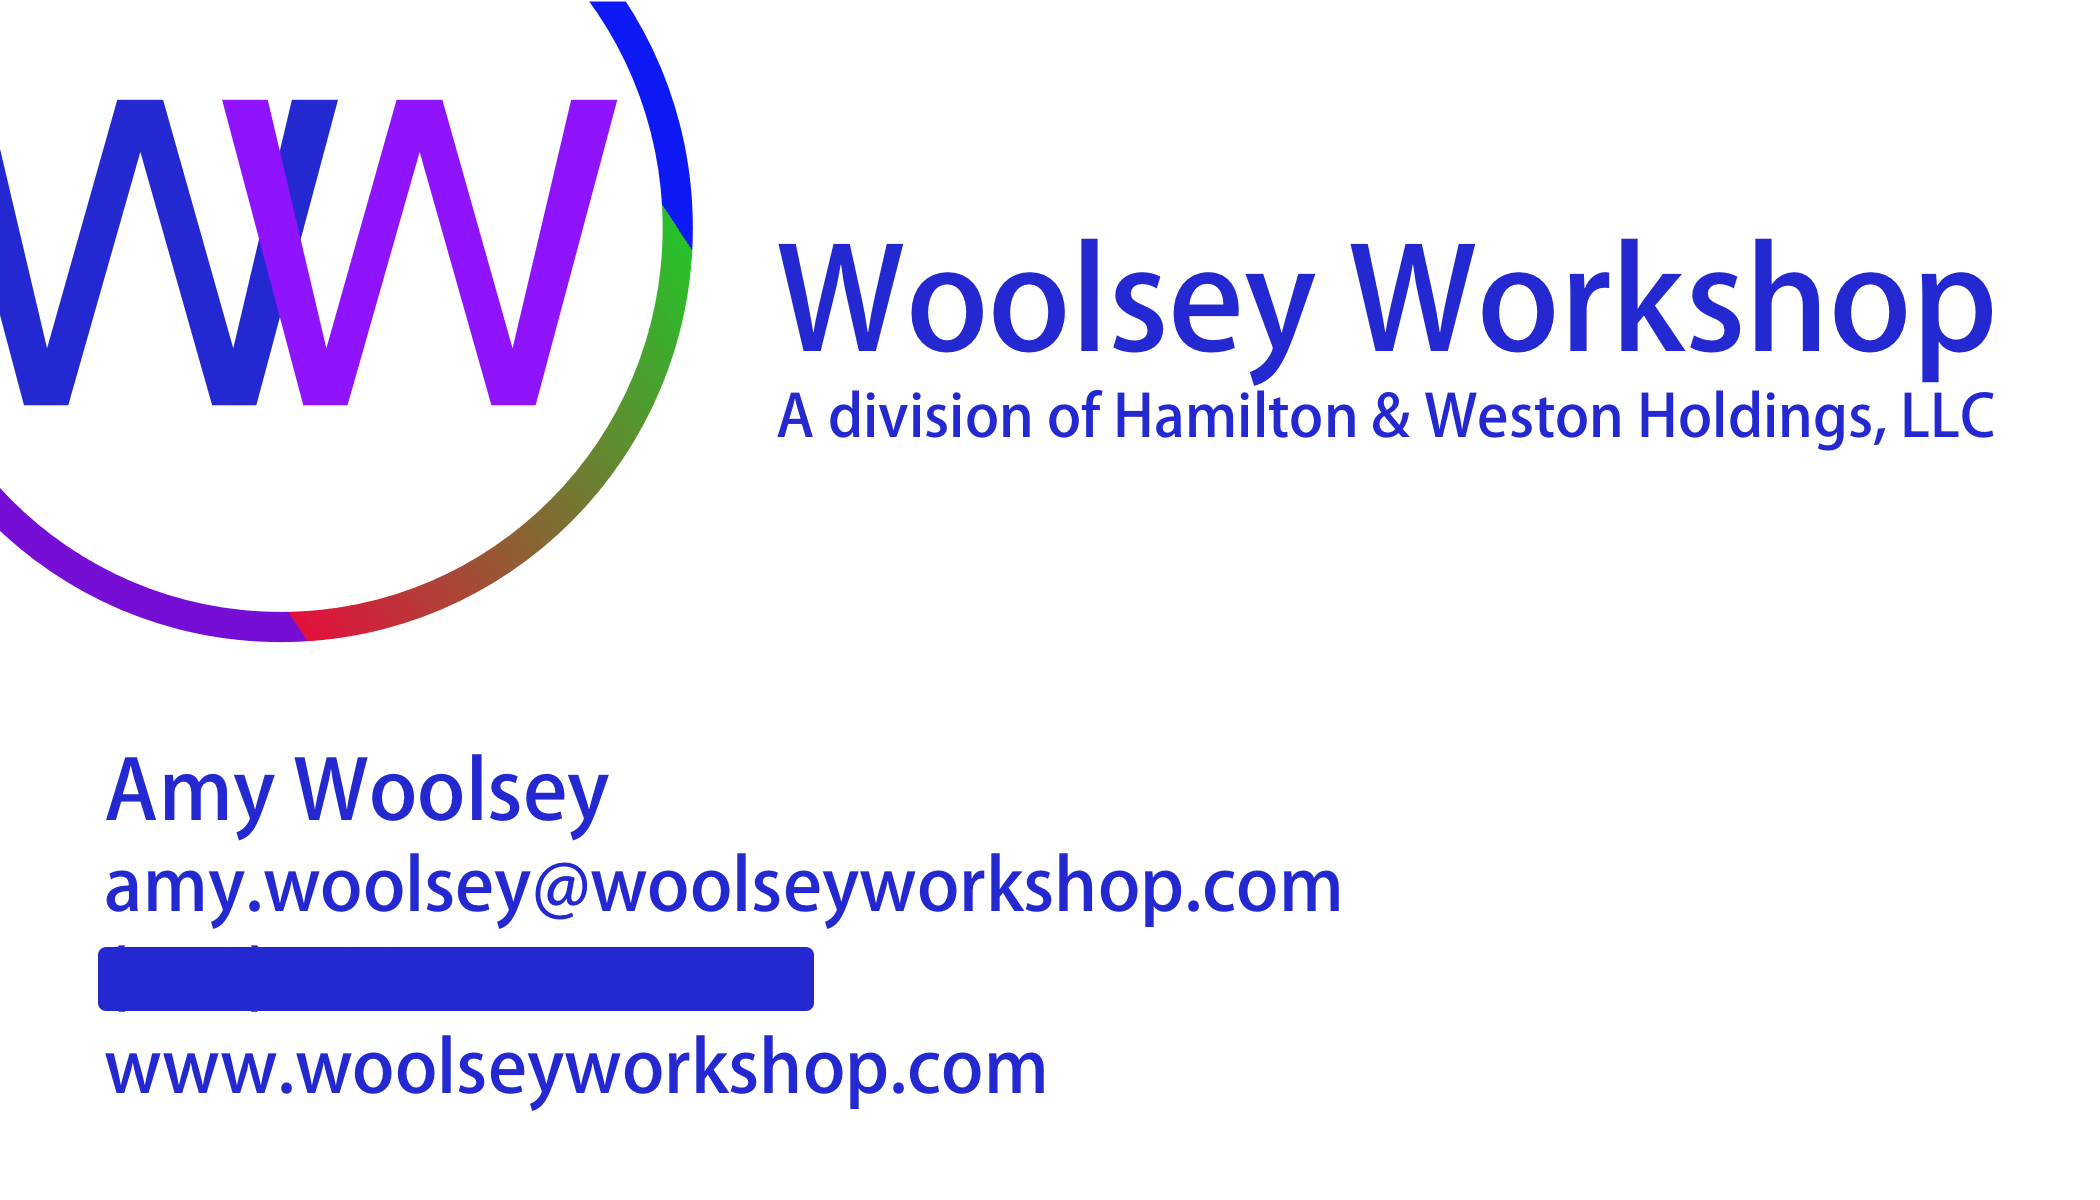 WWS Business Card